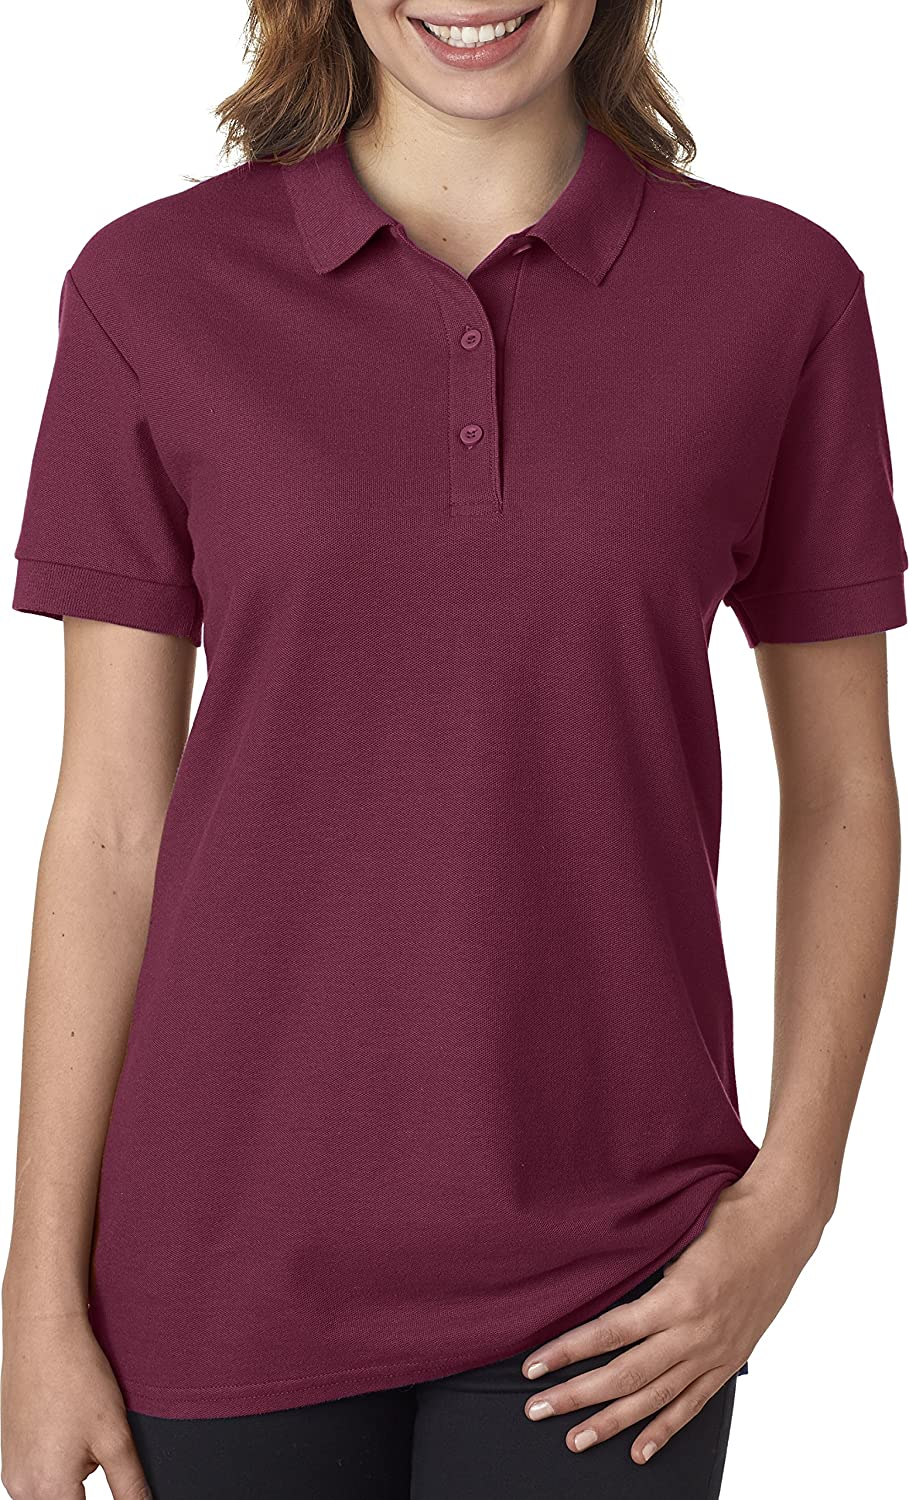 82800L Gildan Premium Cotton™ Women's Double Piqué Polo G828L